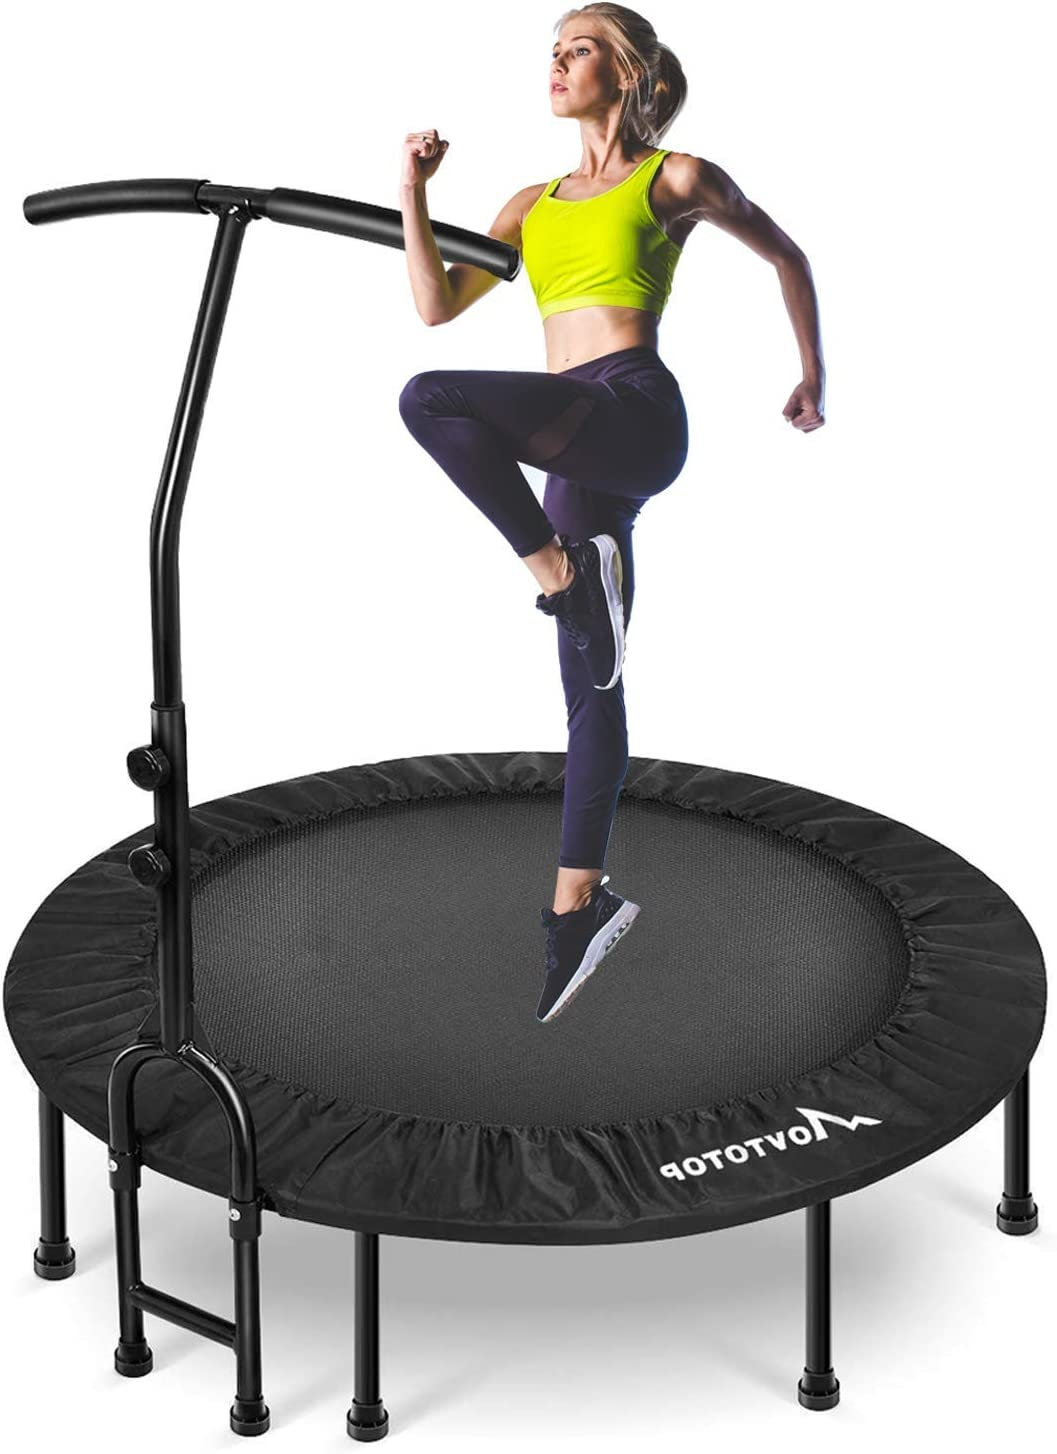 "MOVTOTOP 40"" Foldable Mini Trampoline Rebounder, Indoor Fitness Trampoline with Adjustable Handrail and Safety Pad"